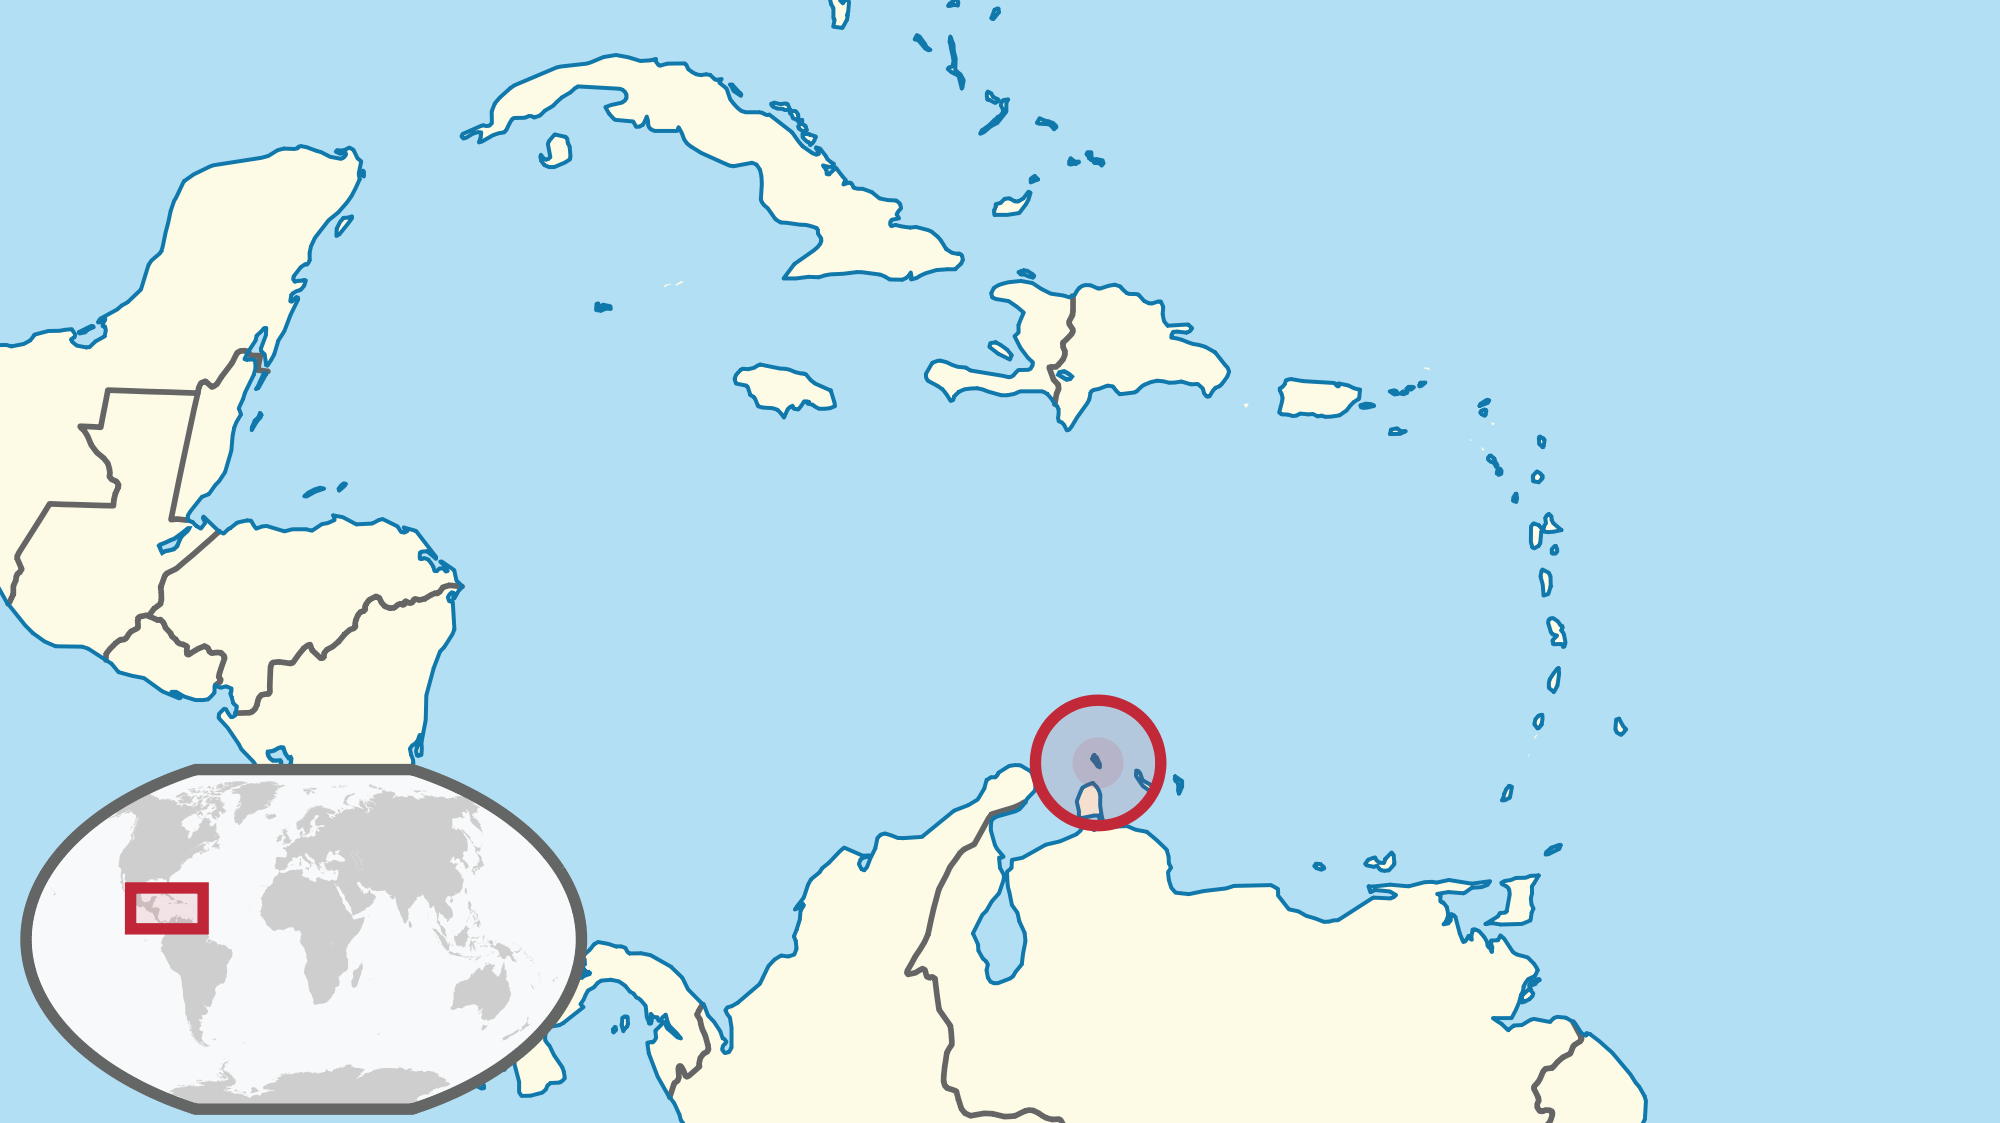 Location of the Aruba in the World Map